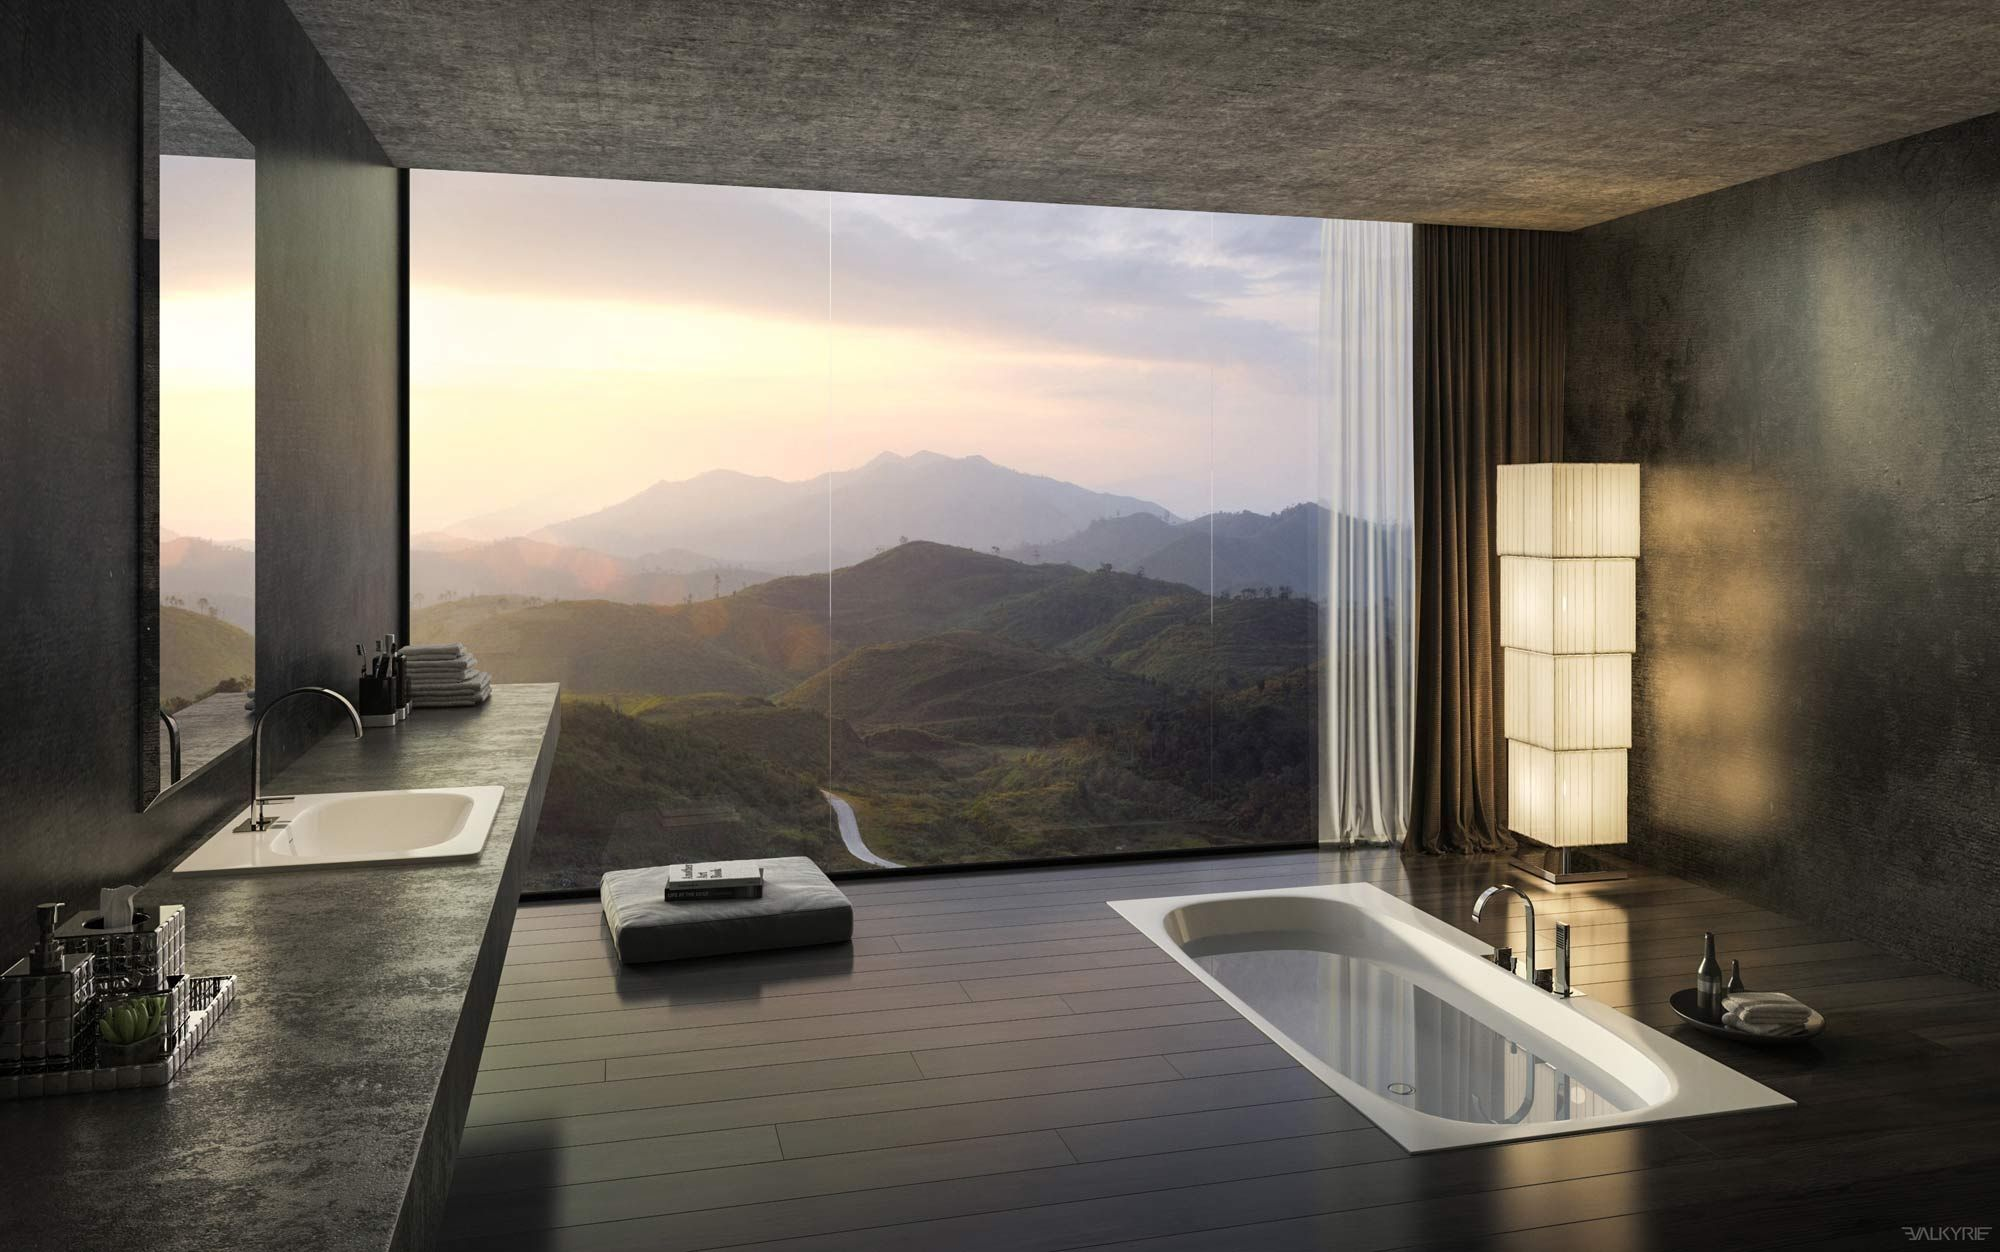 Luxurious Bathroom Design With Beautiful View Idea Do You Like To Look A Beautiful View You Can App Bathroom Decor Luxury Bathroom Design Luxury House Design Japanese bathroom design ideas